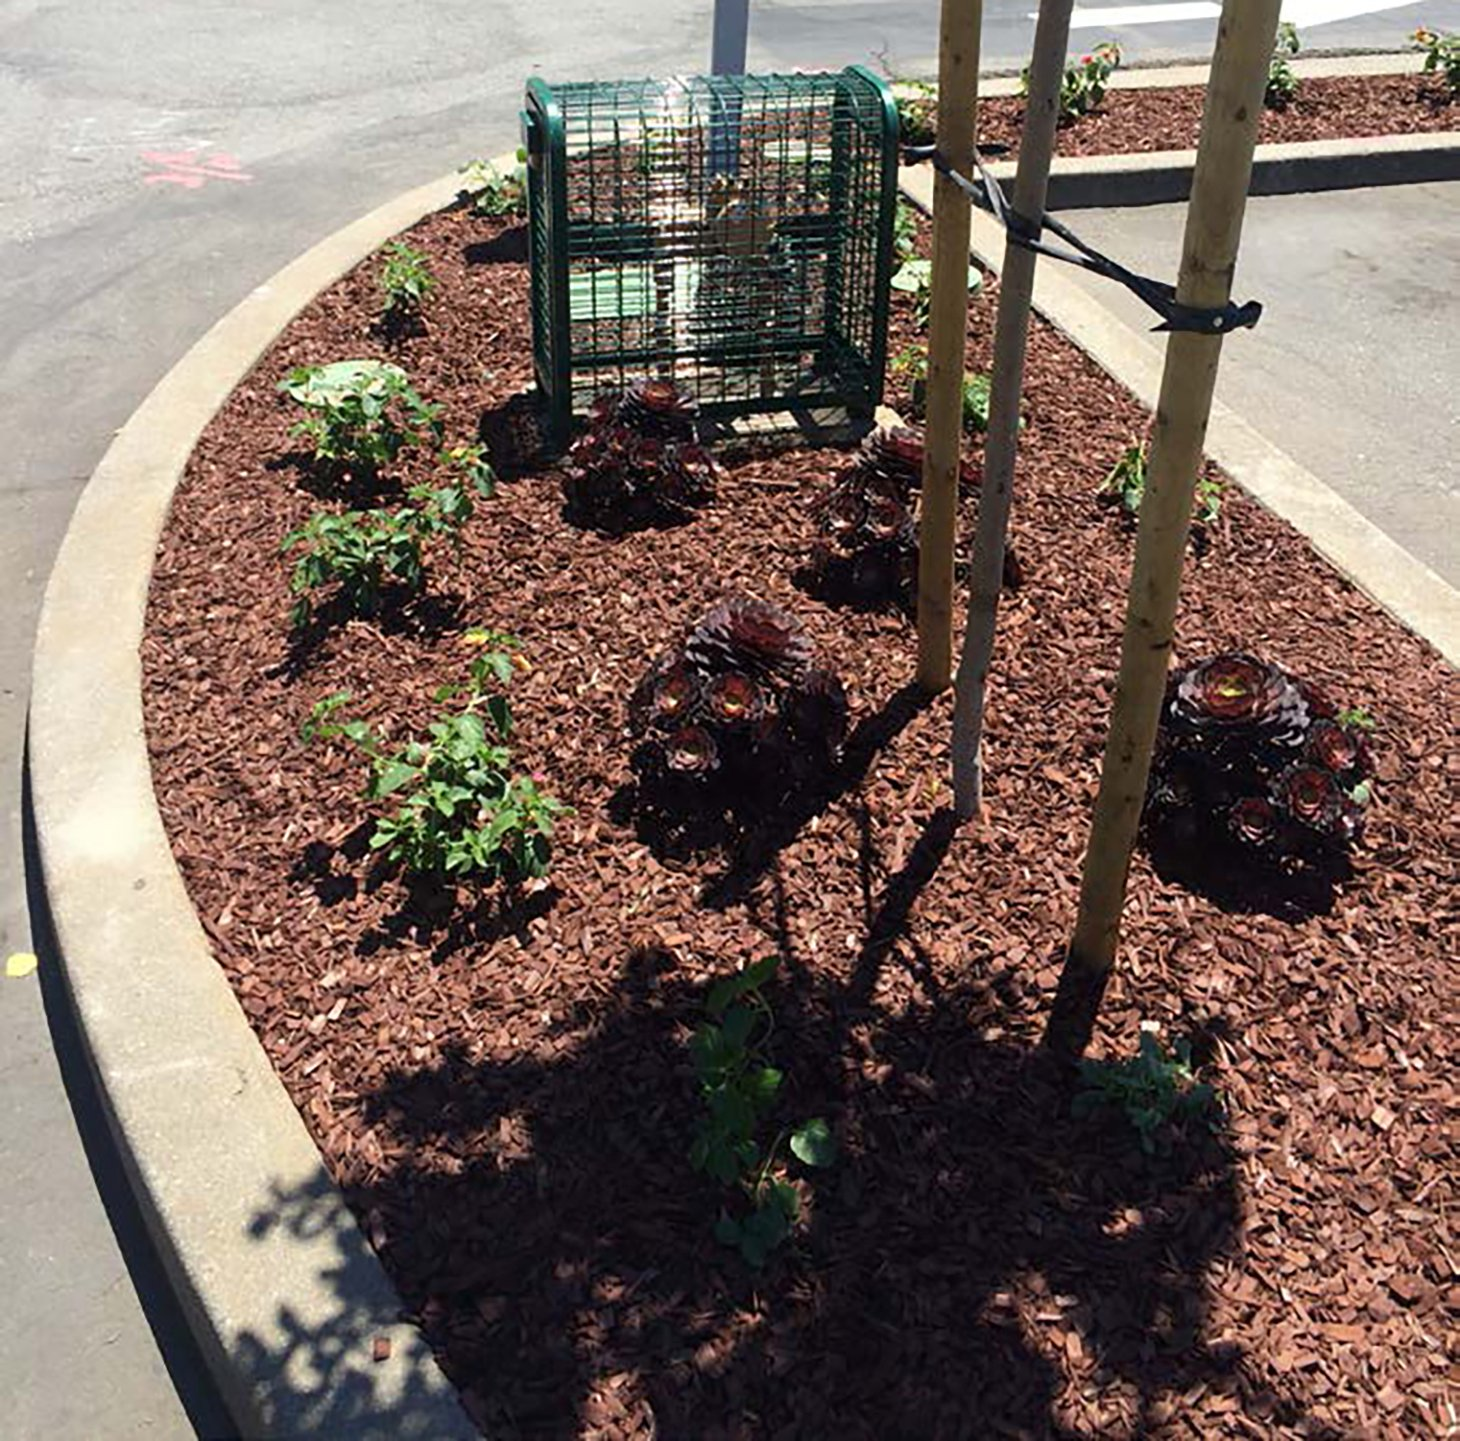 PG&E restored planter areas upon completion of cleanup activities.